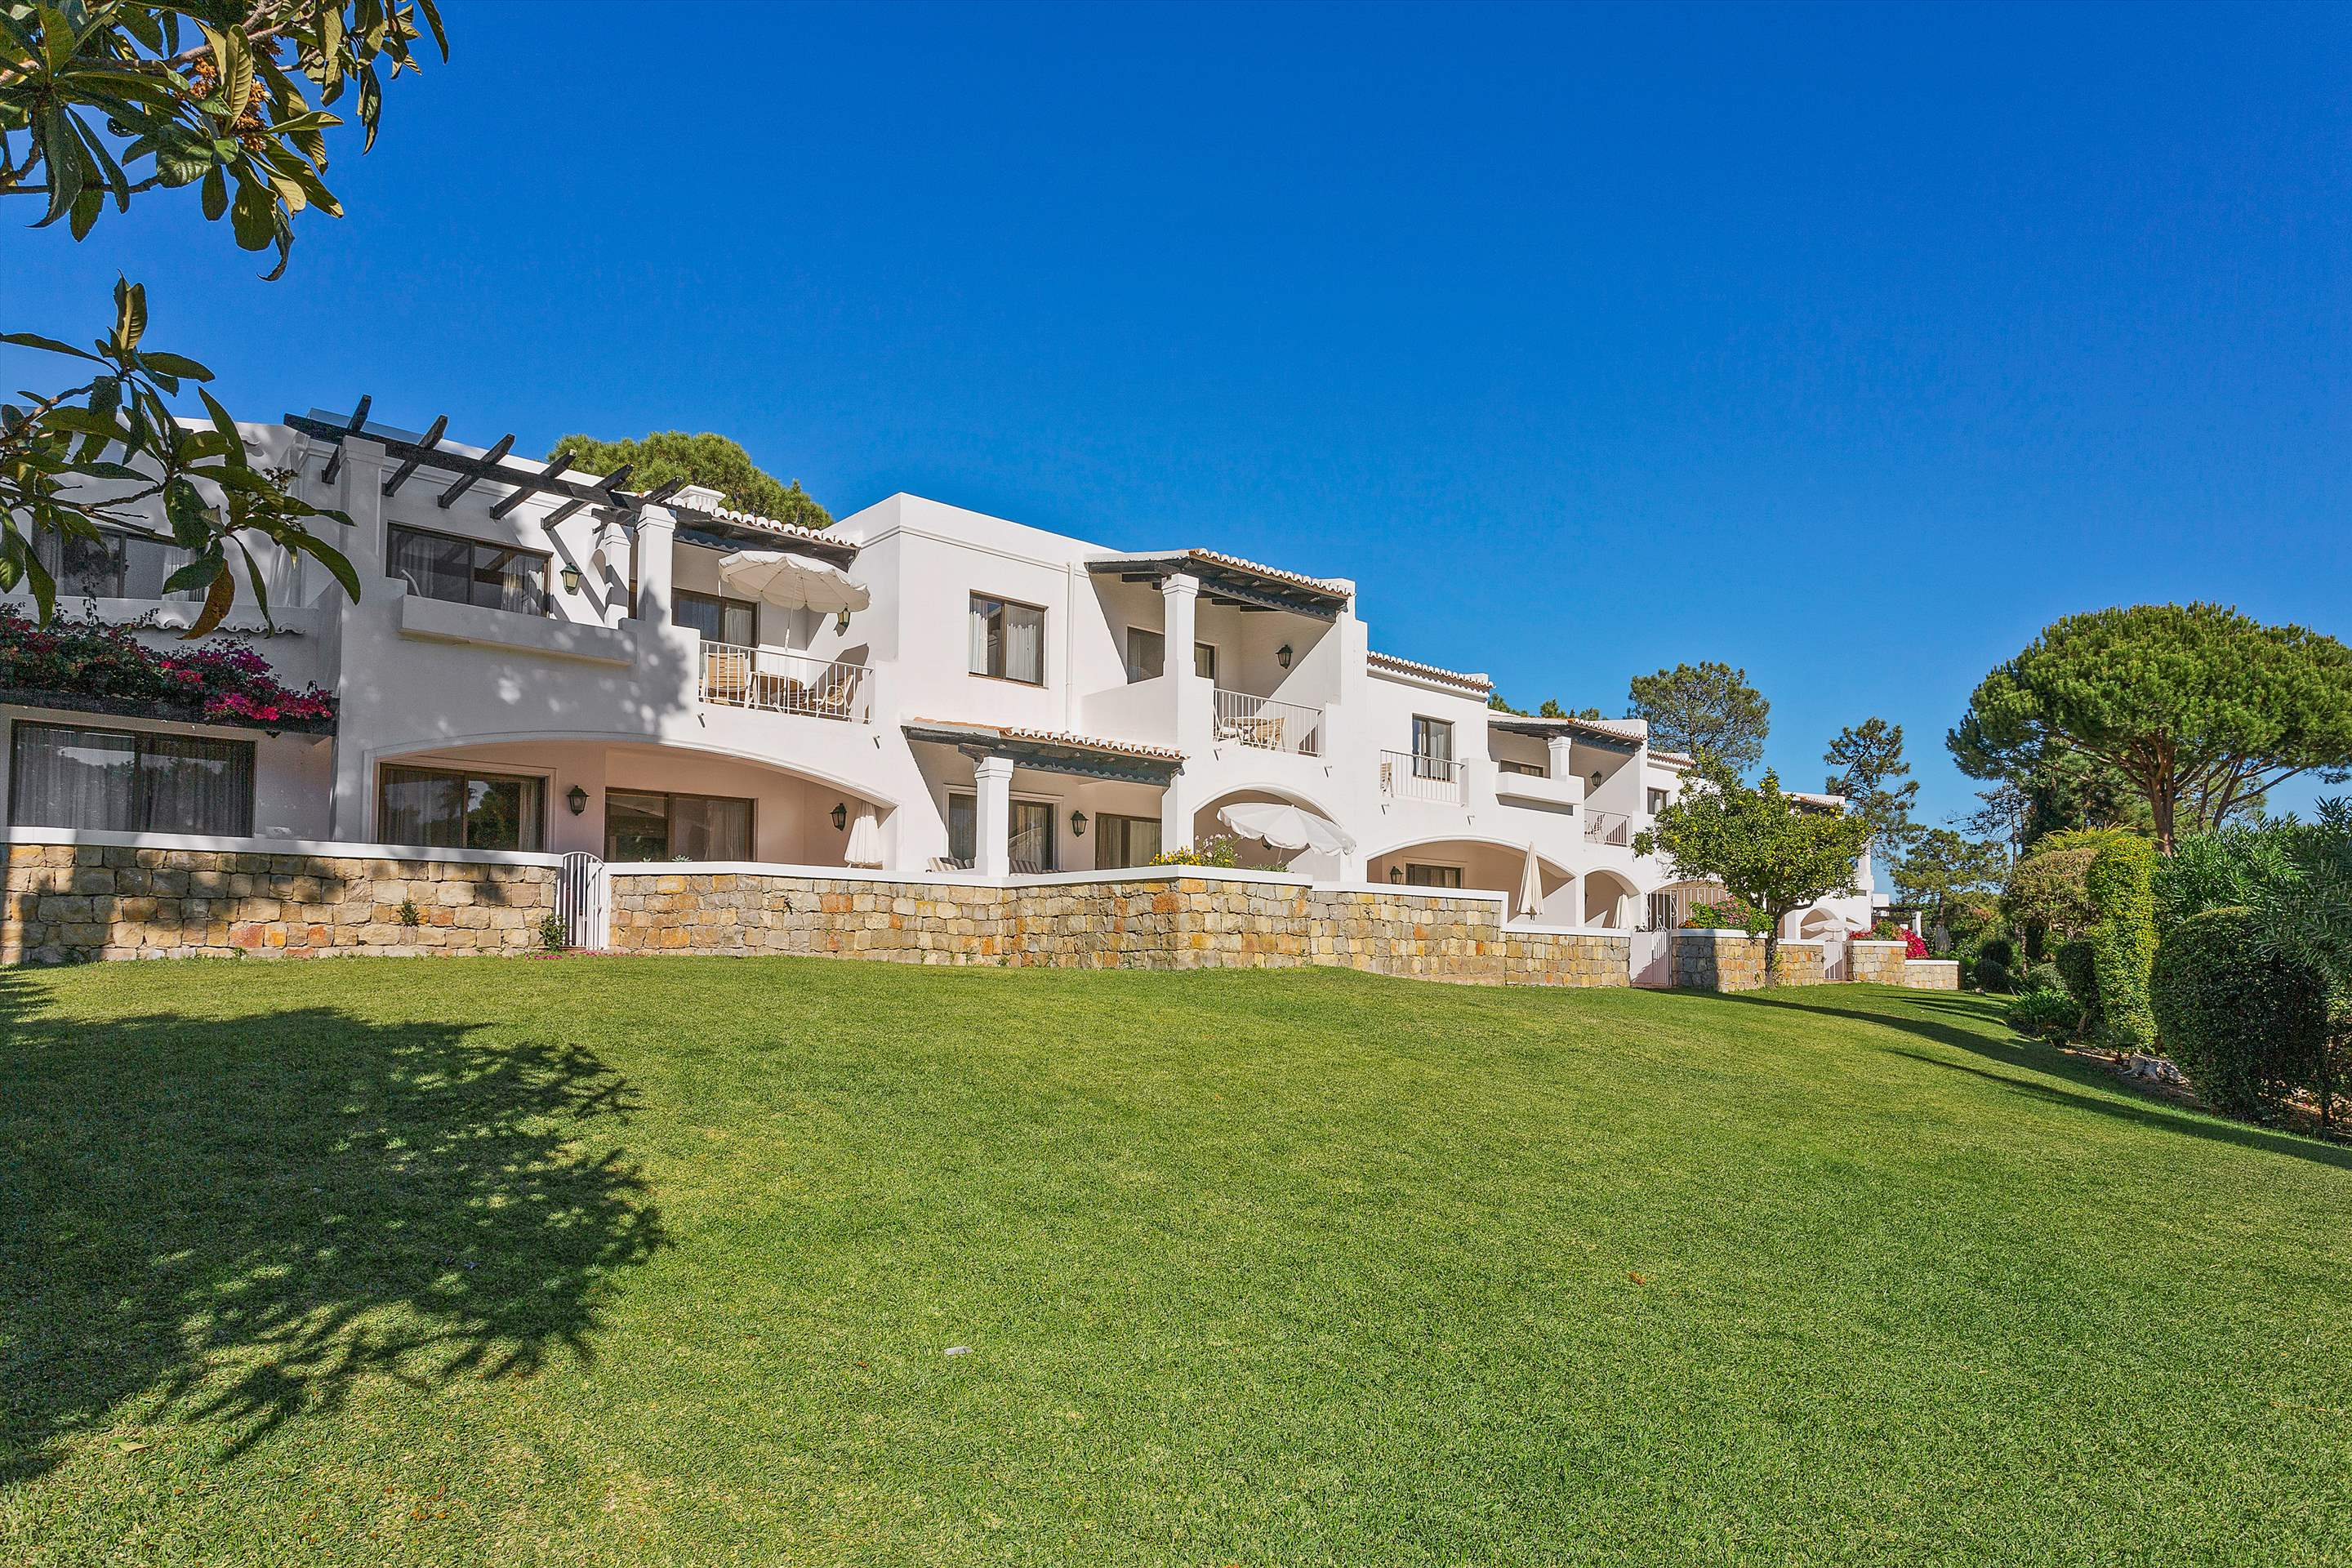 Four Seasons Country Club 2 Bed Townhouse, Superior - Saturday Arrival, 2 bedroom apartment in Four Seasons Country Club, Algarve Photo #1